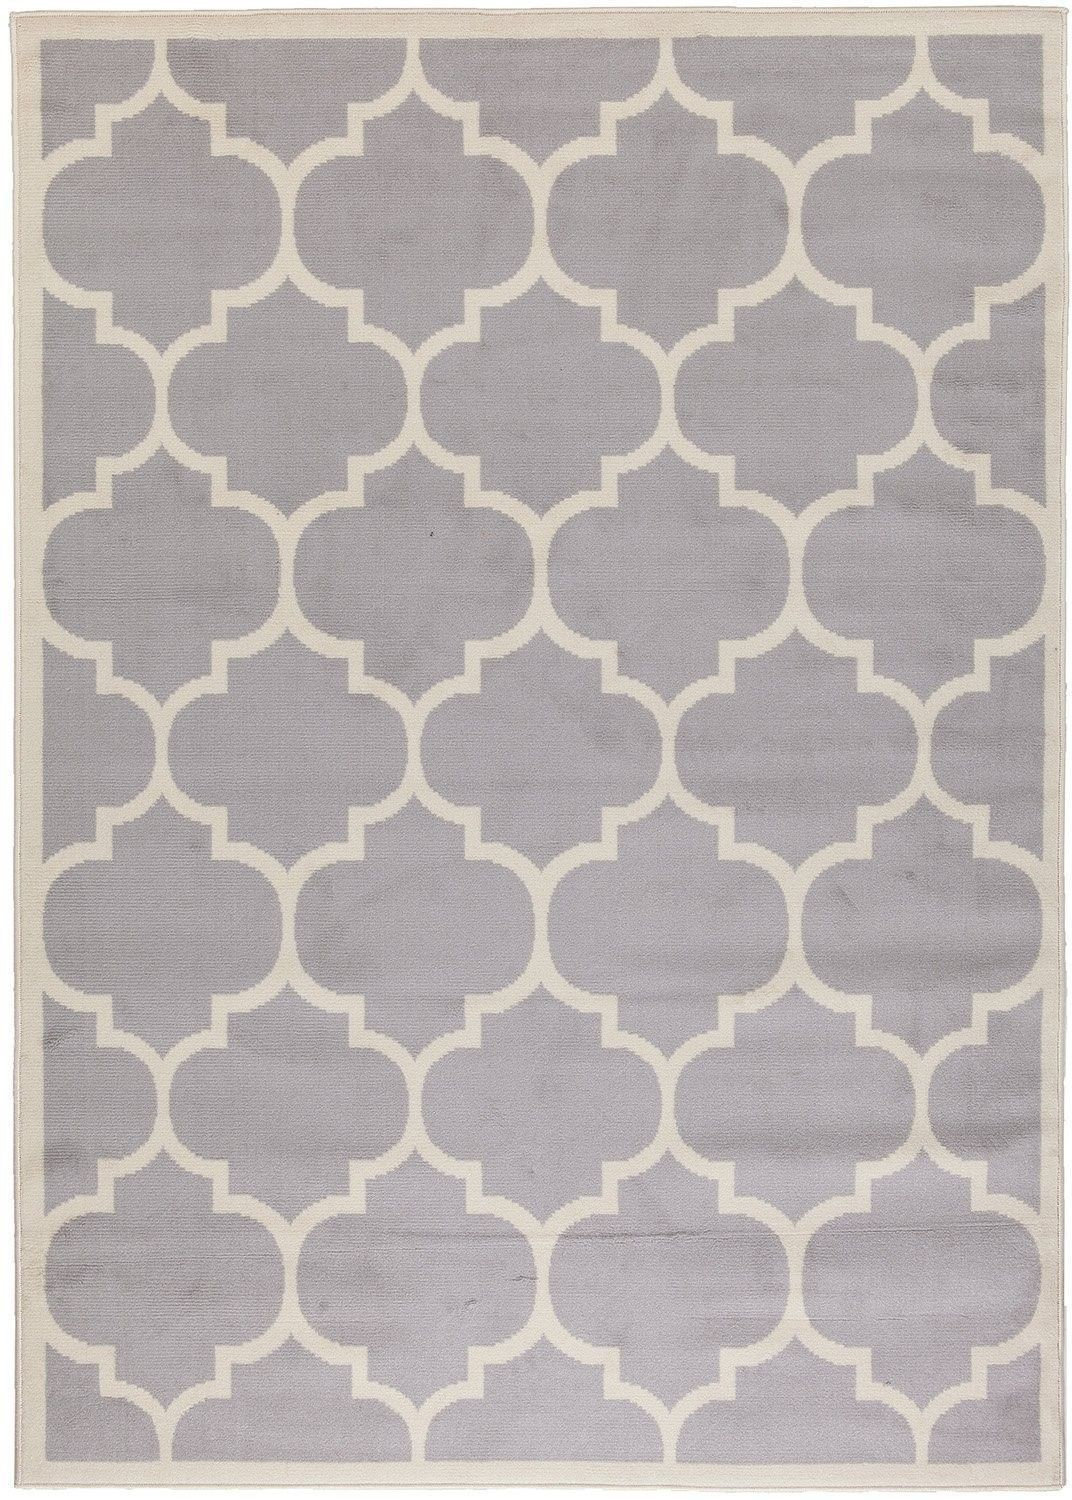 homesense gray area rug deco salon pinterest homesense